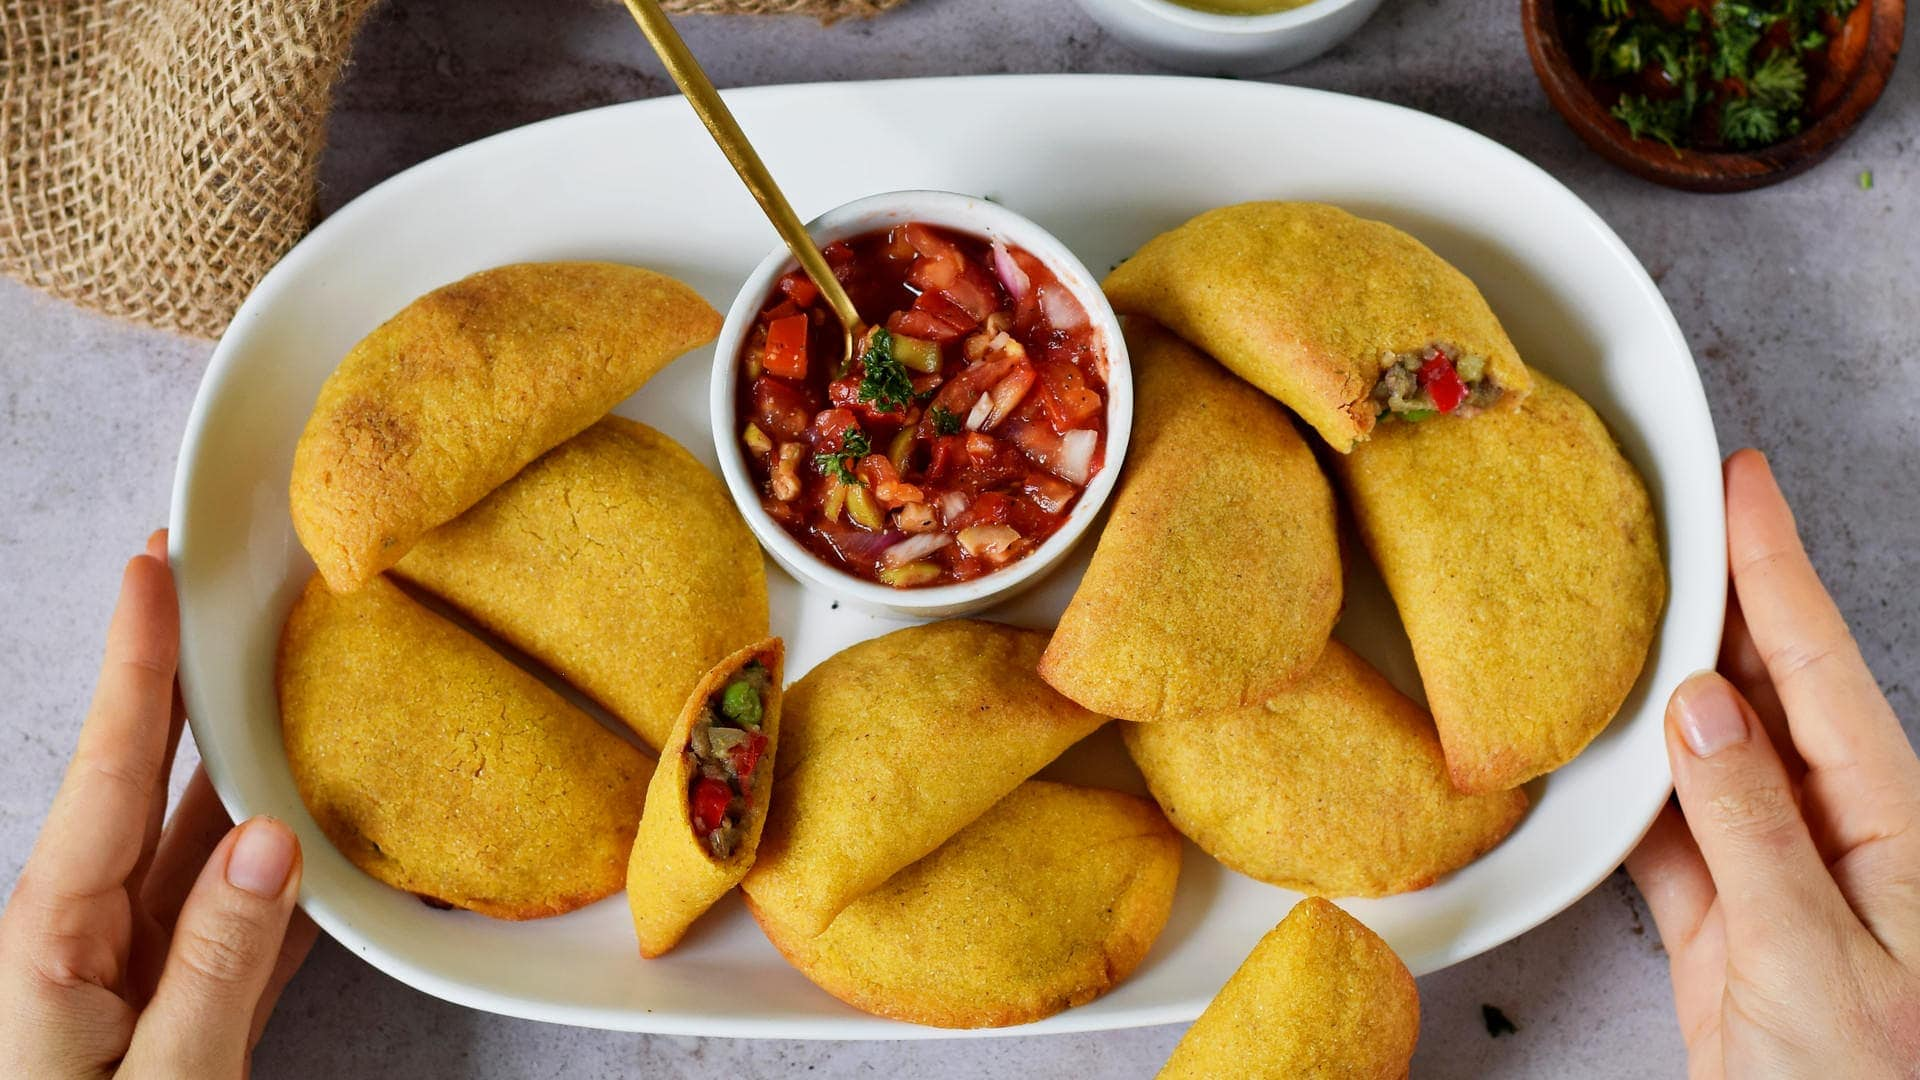 hands holding white plate with vegan empanadas and tomato salsa